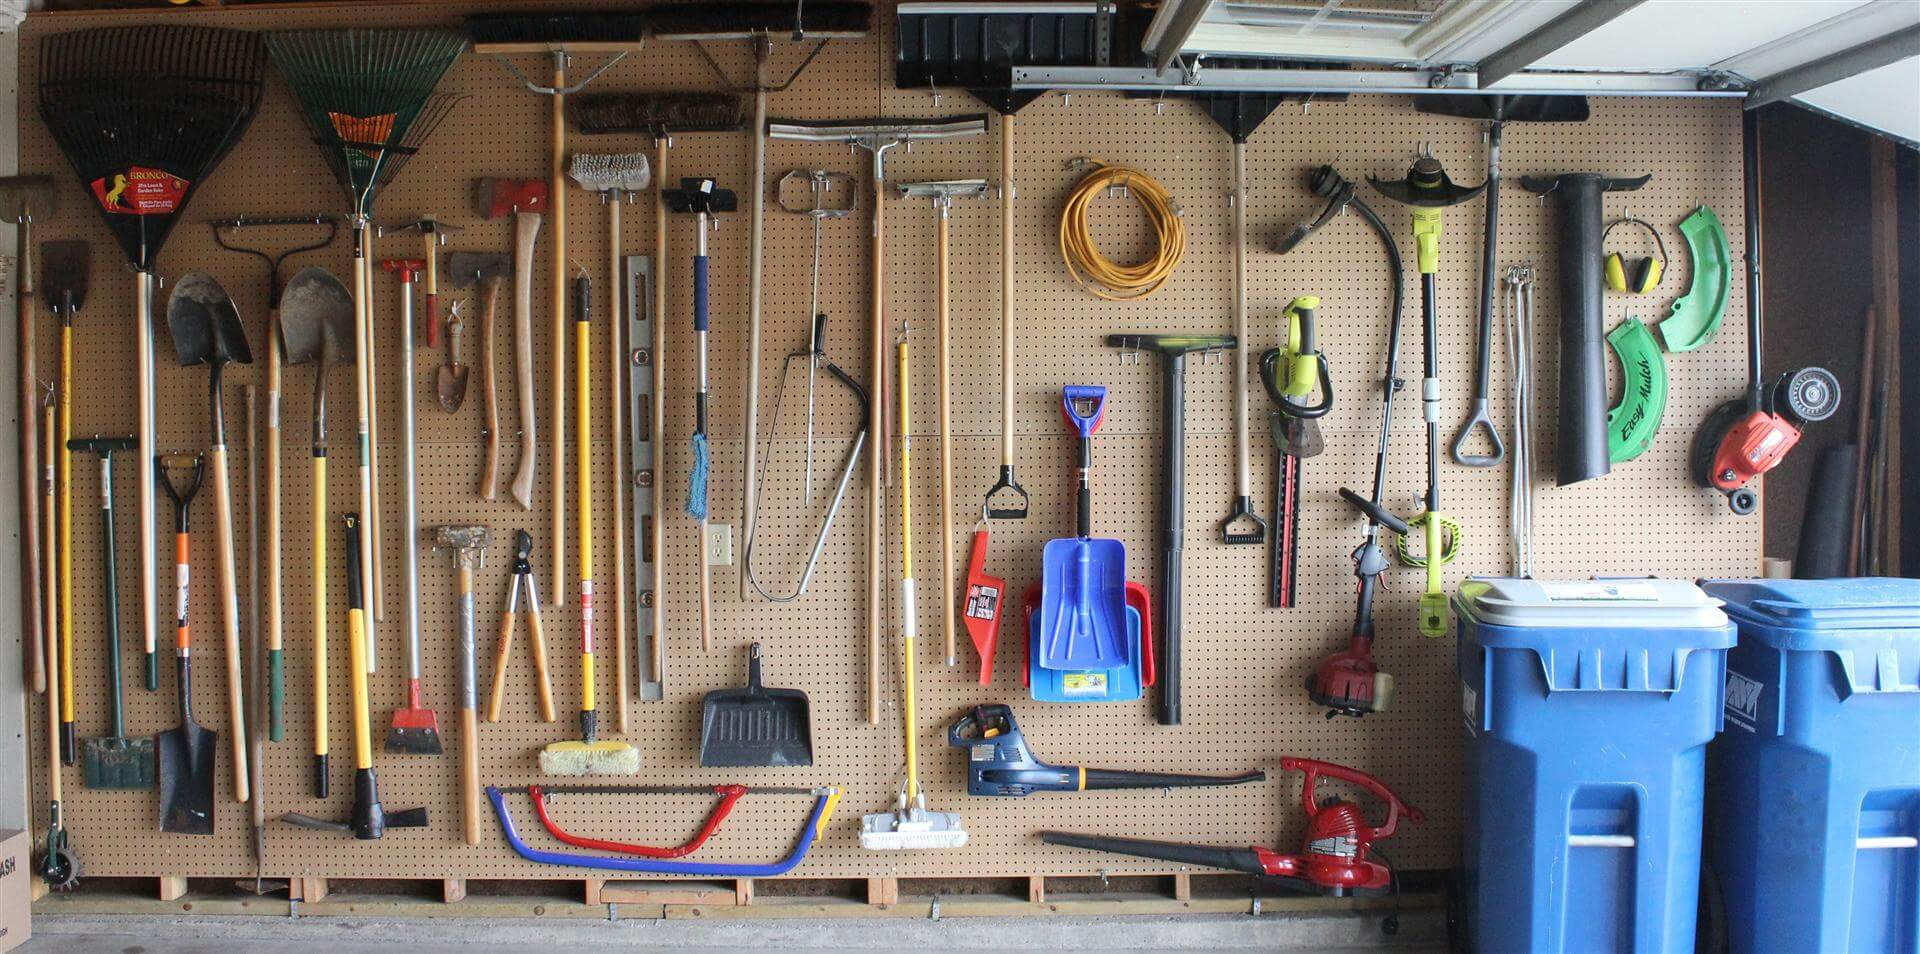 garage organization it 39 s tough to beat pegboard. Black Bedroom Furniture Sets. Home Design Ideas